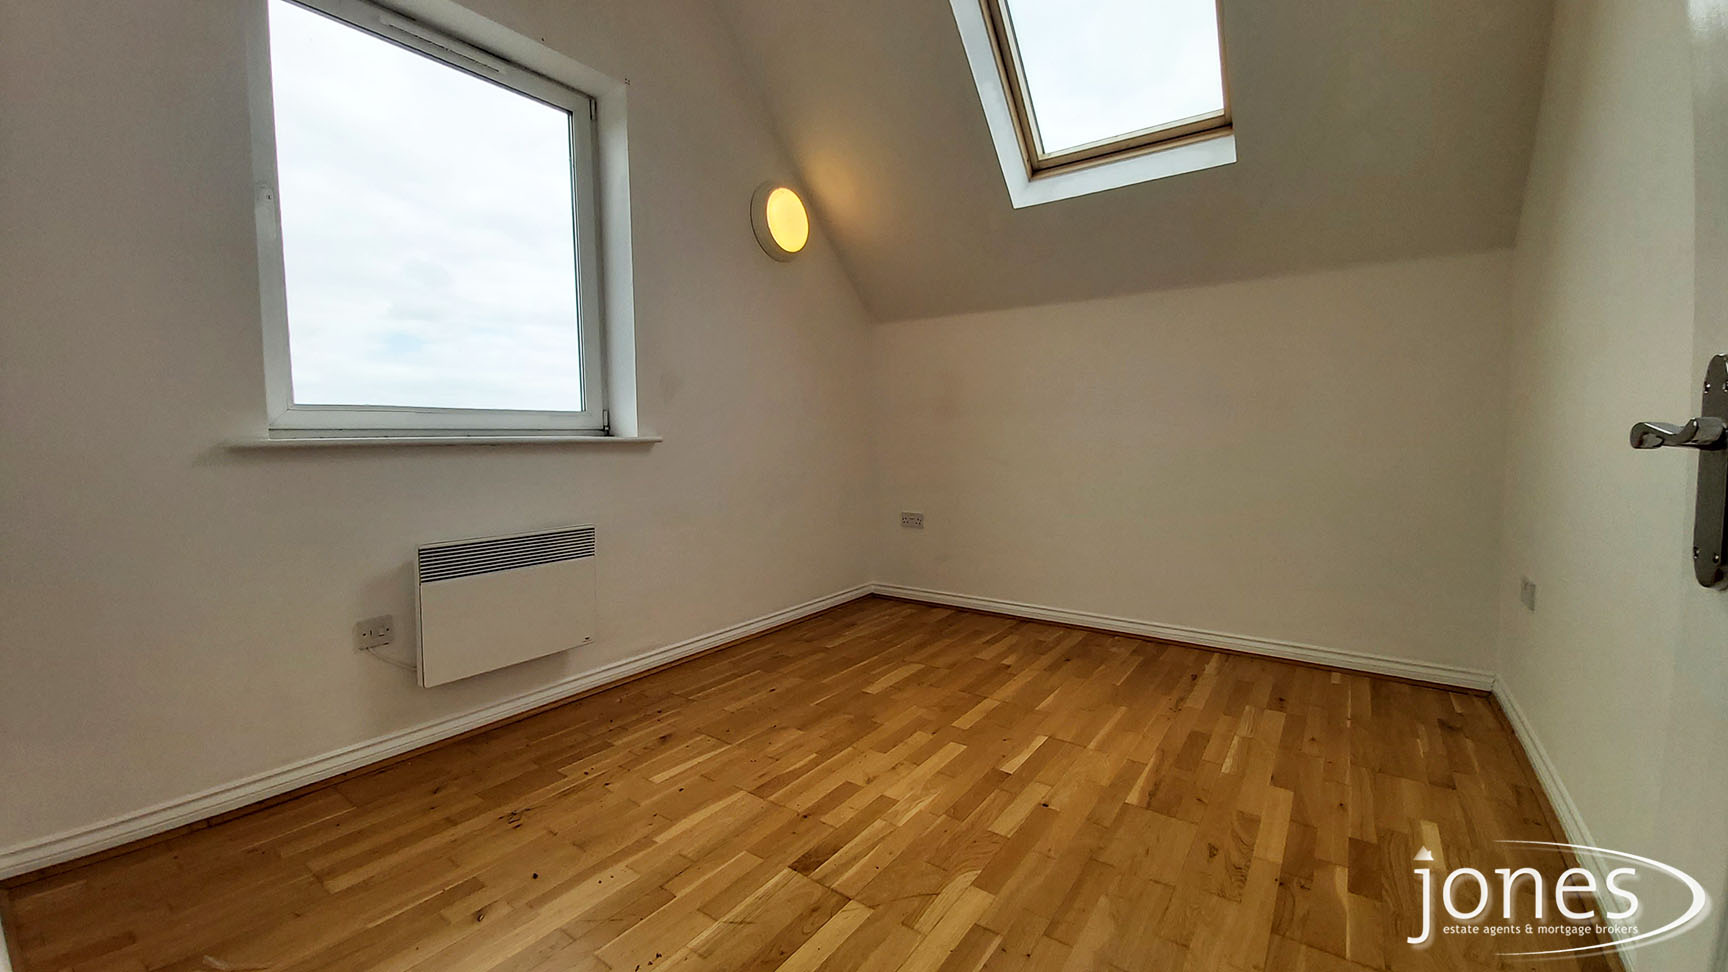 Home for Sale Let - Photo 07 Willow Sage Court, Stockton on Tees, TS18 3UQ